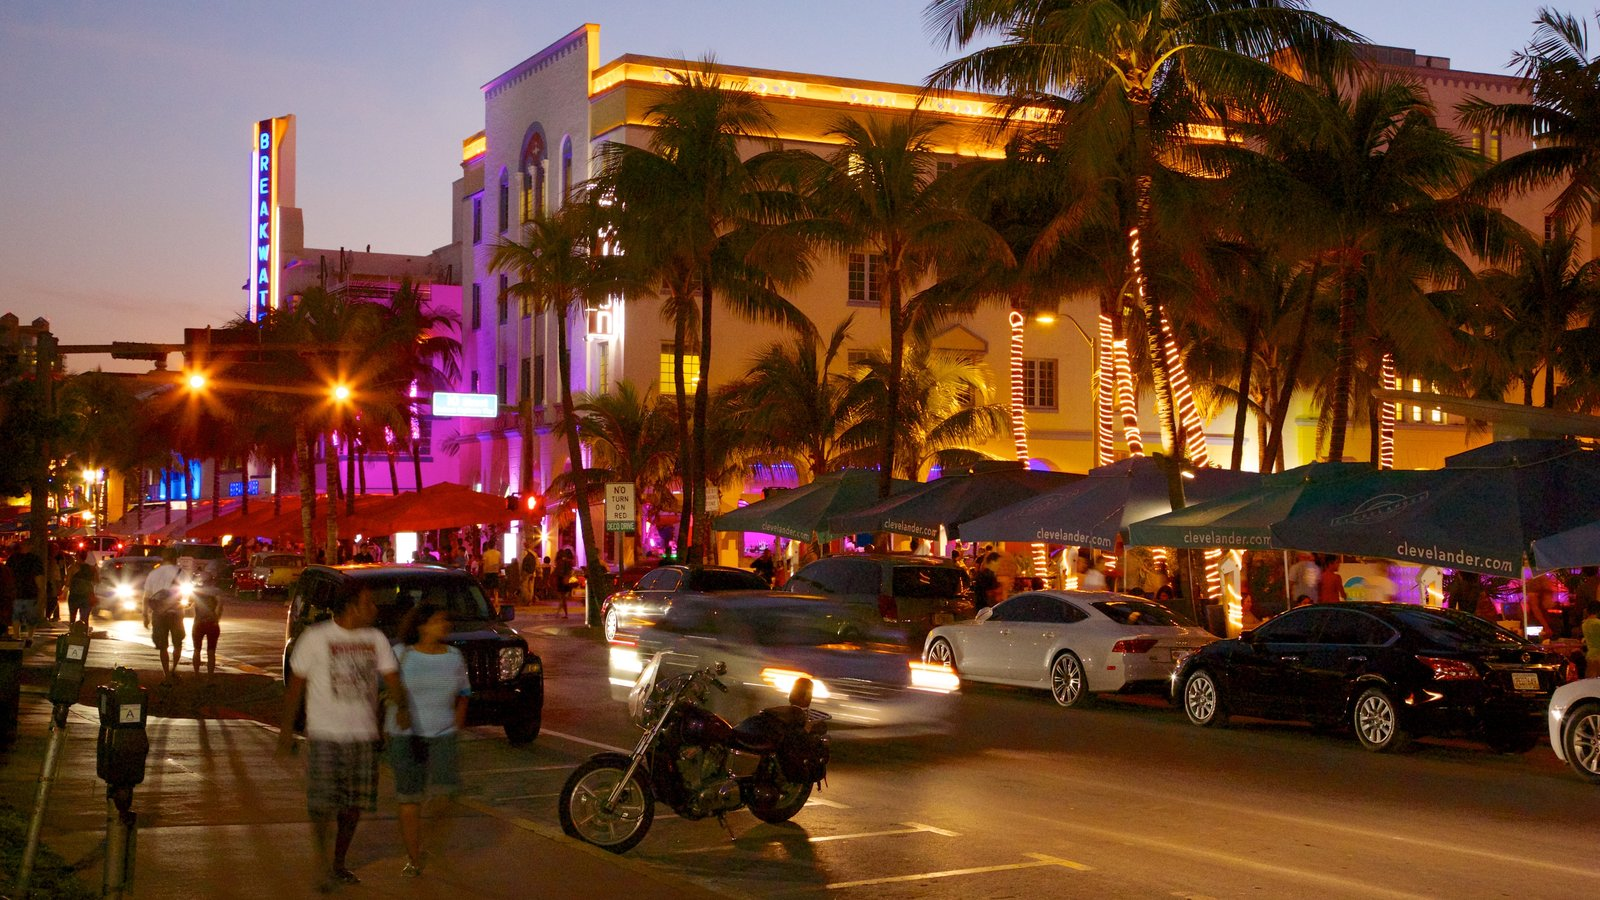 Miami Beach which includes street scenes, night scenes and a city